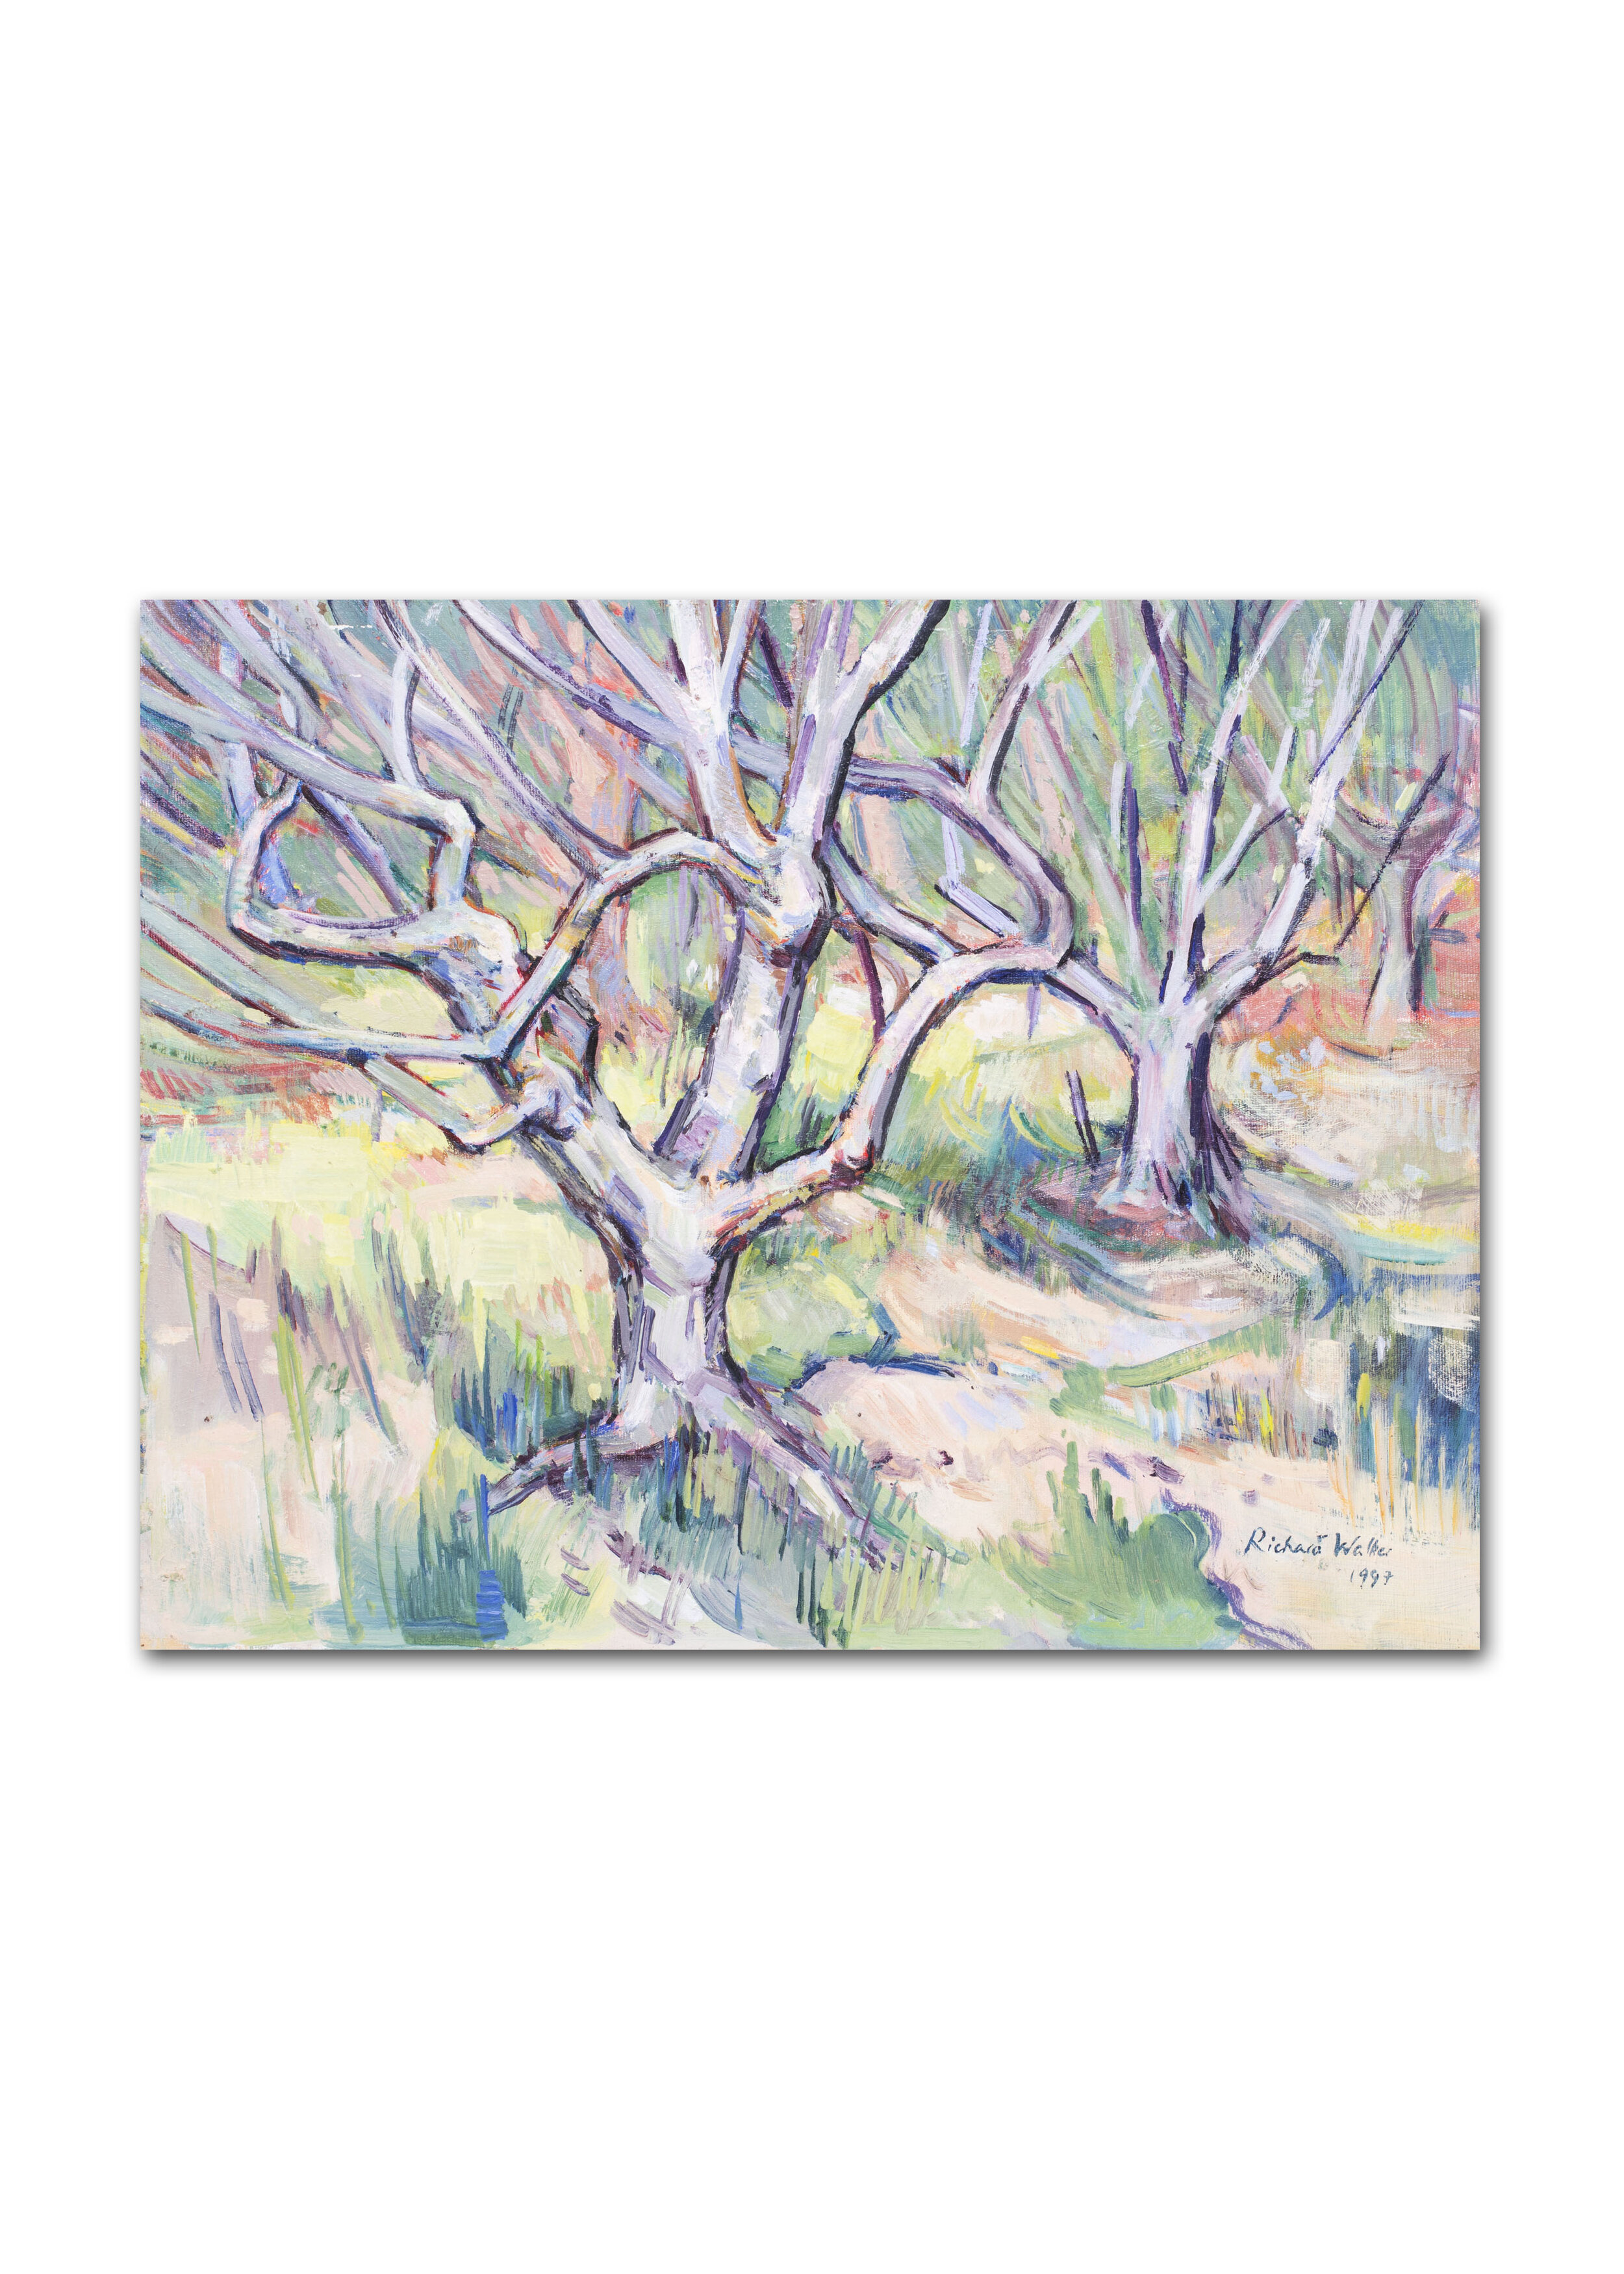 Richard Walker  In the orchard  Price: £550